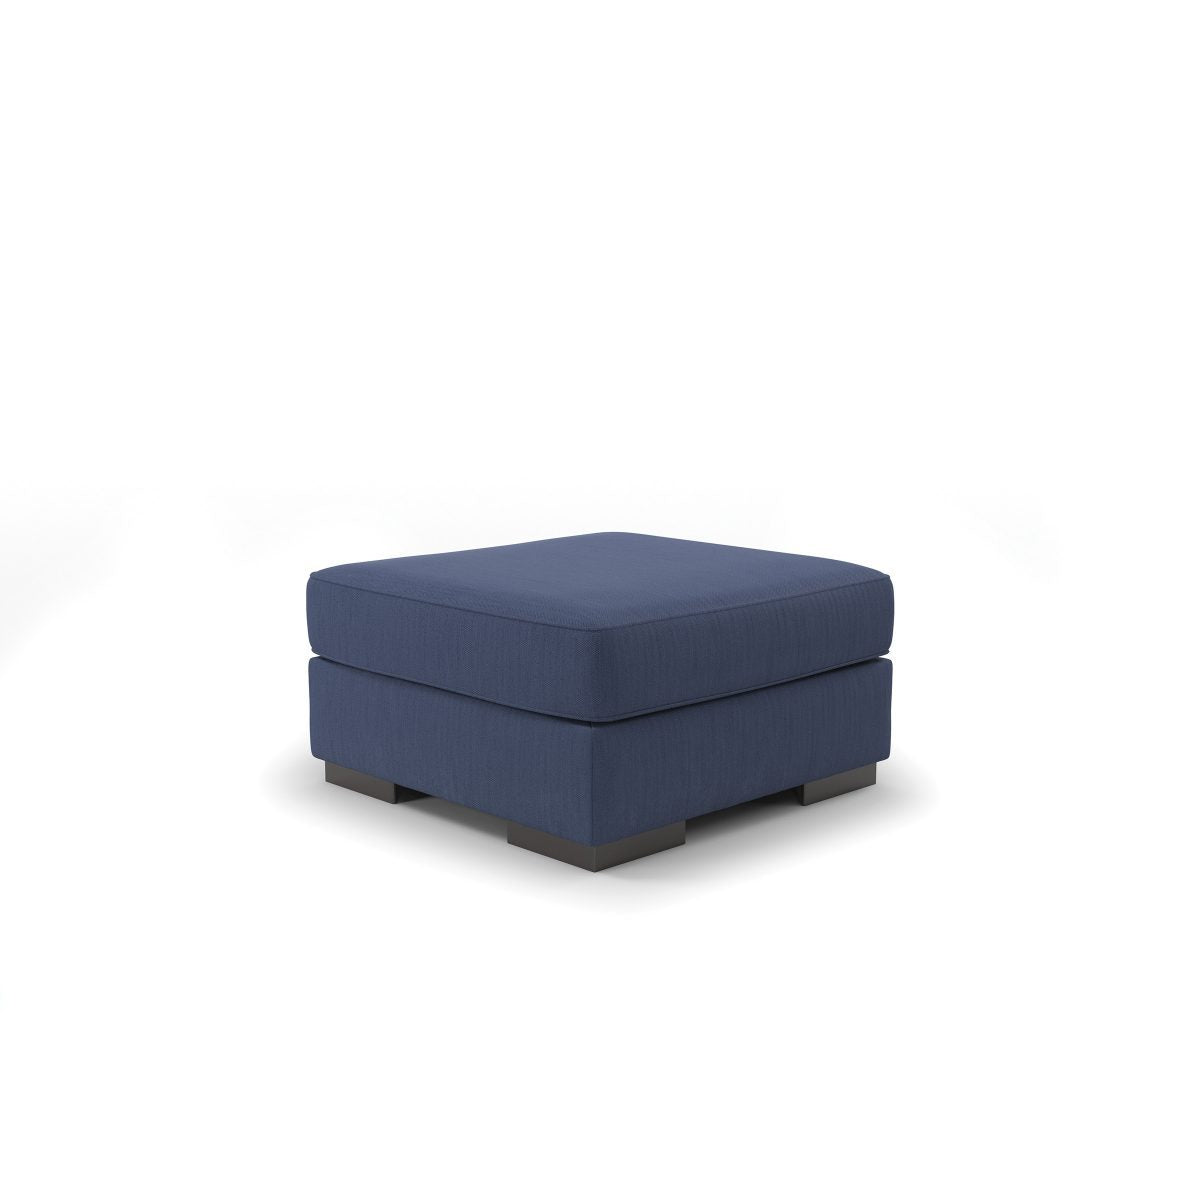 Ashley 185 Bantry Nuvella Oversized Accent Ottoman